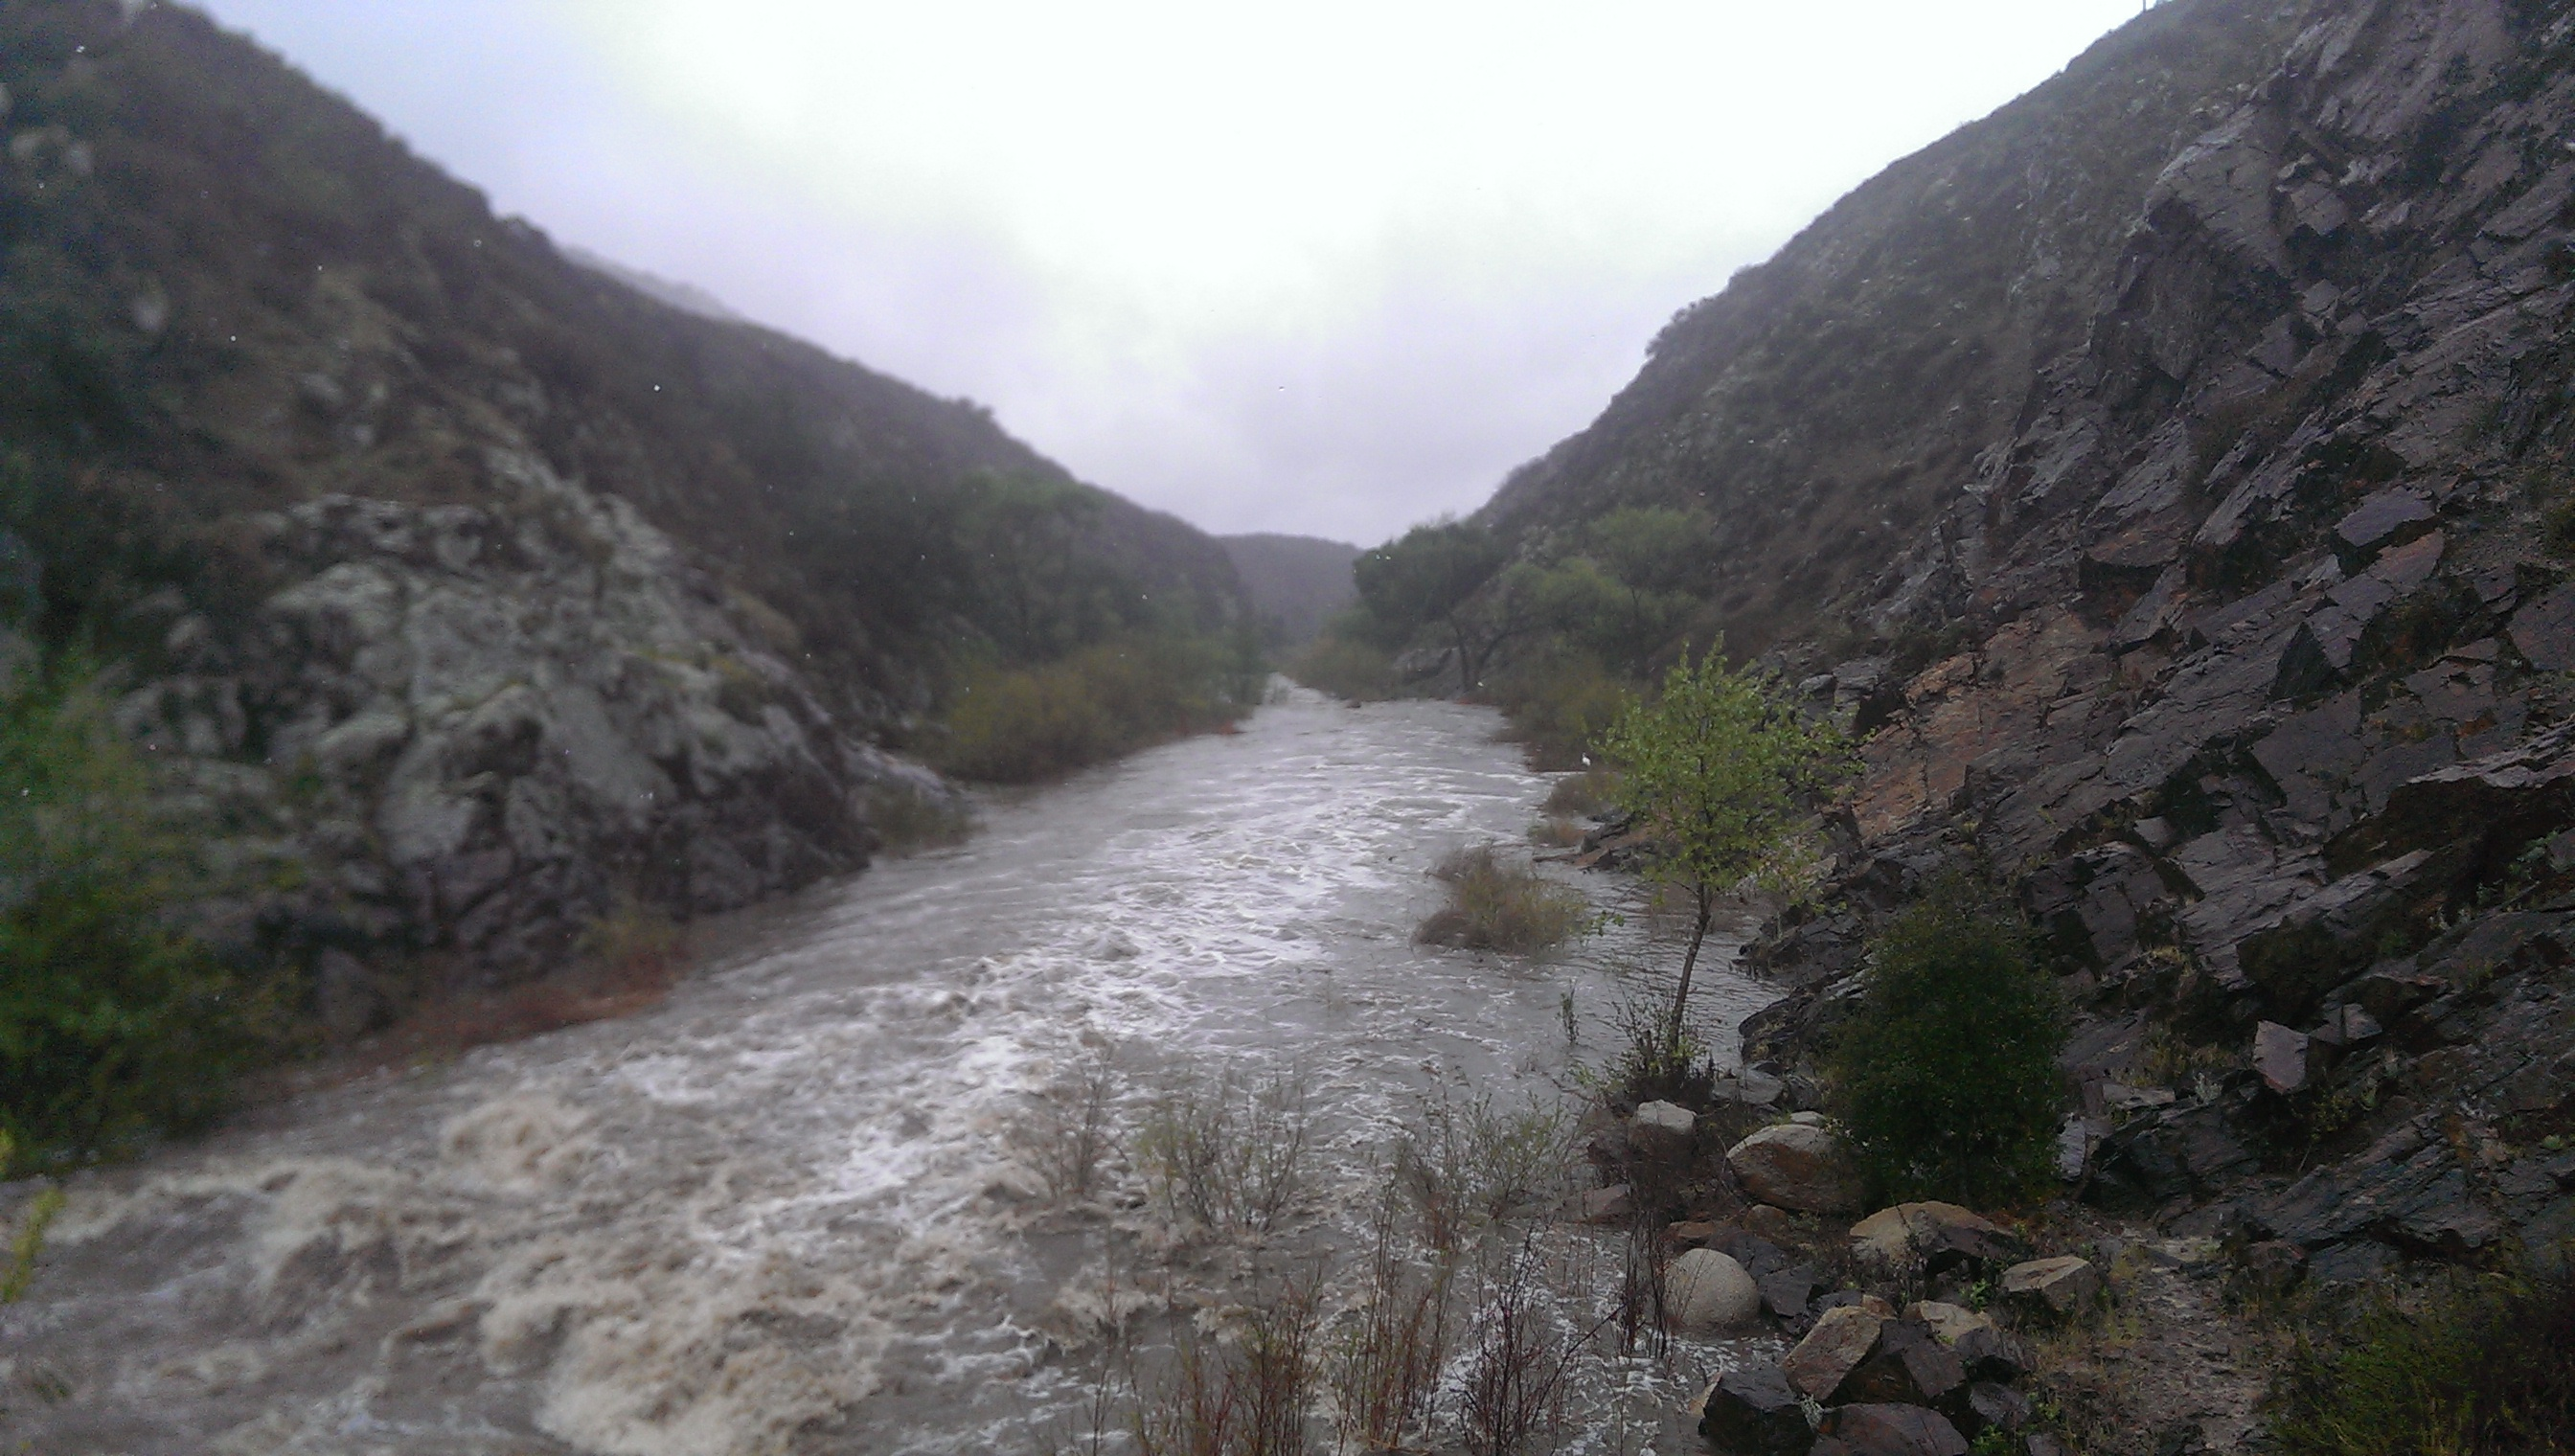 River in canyon flowing at high volume, vanishing into distance